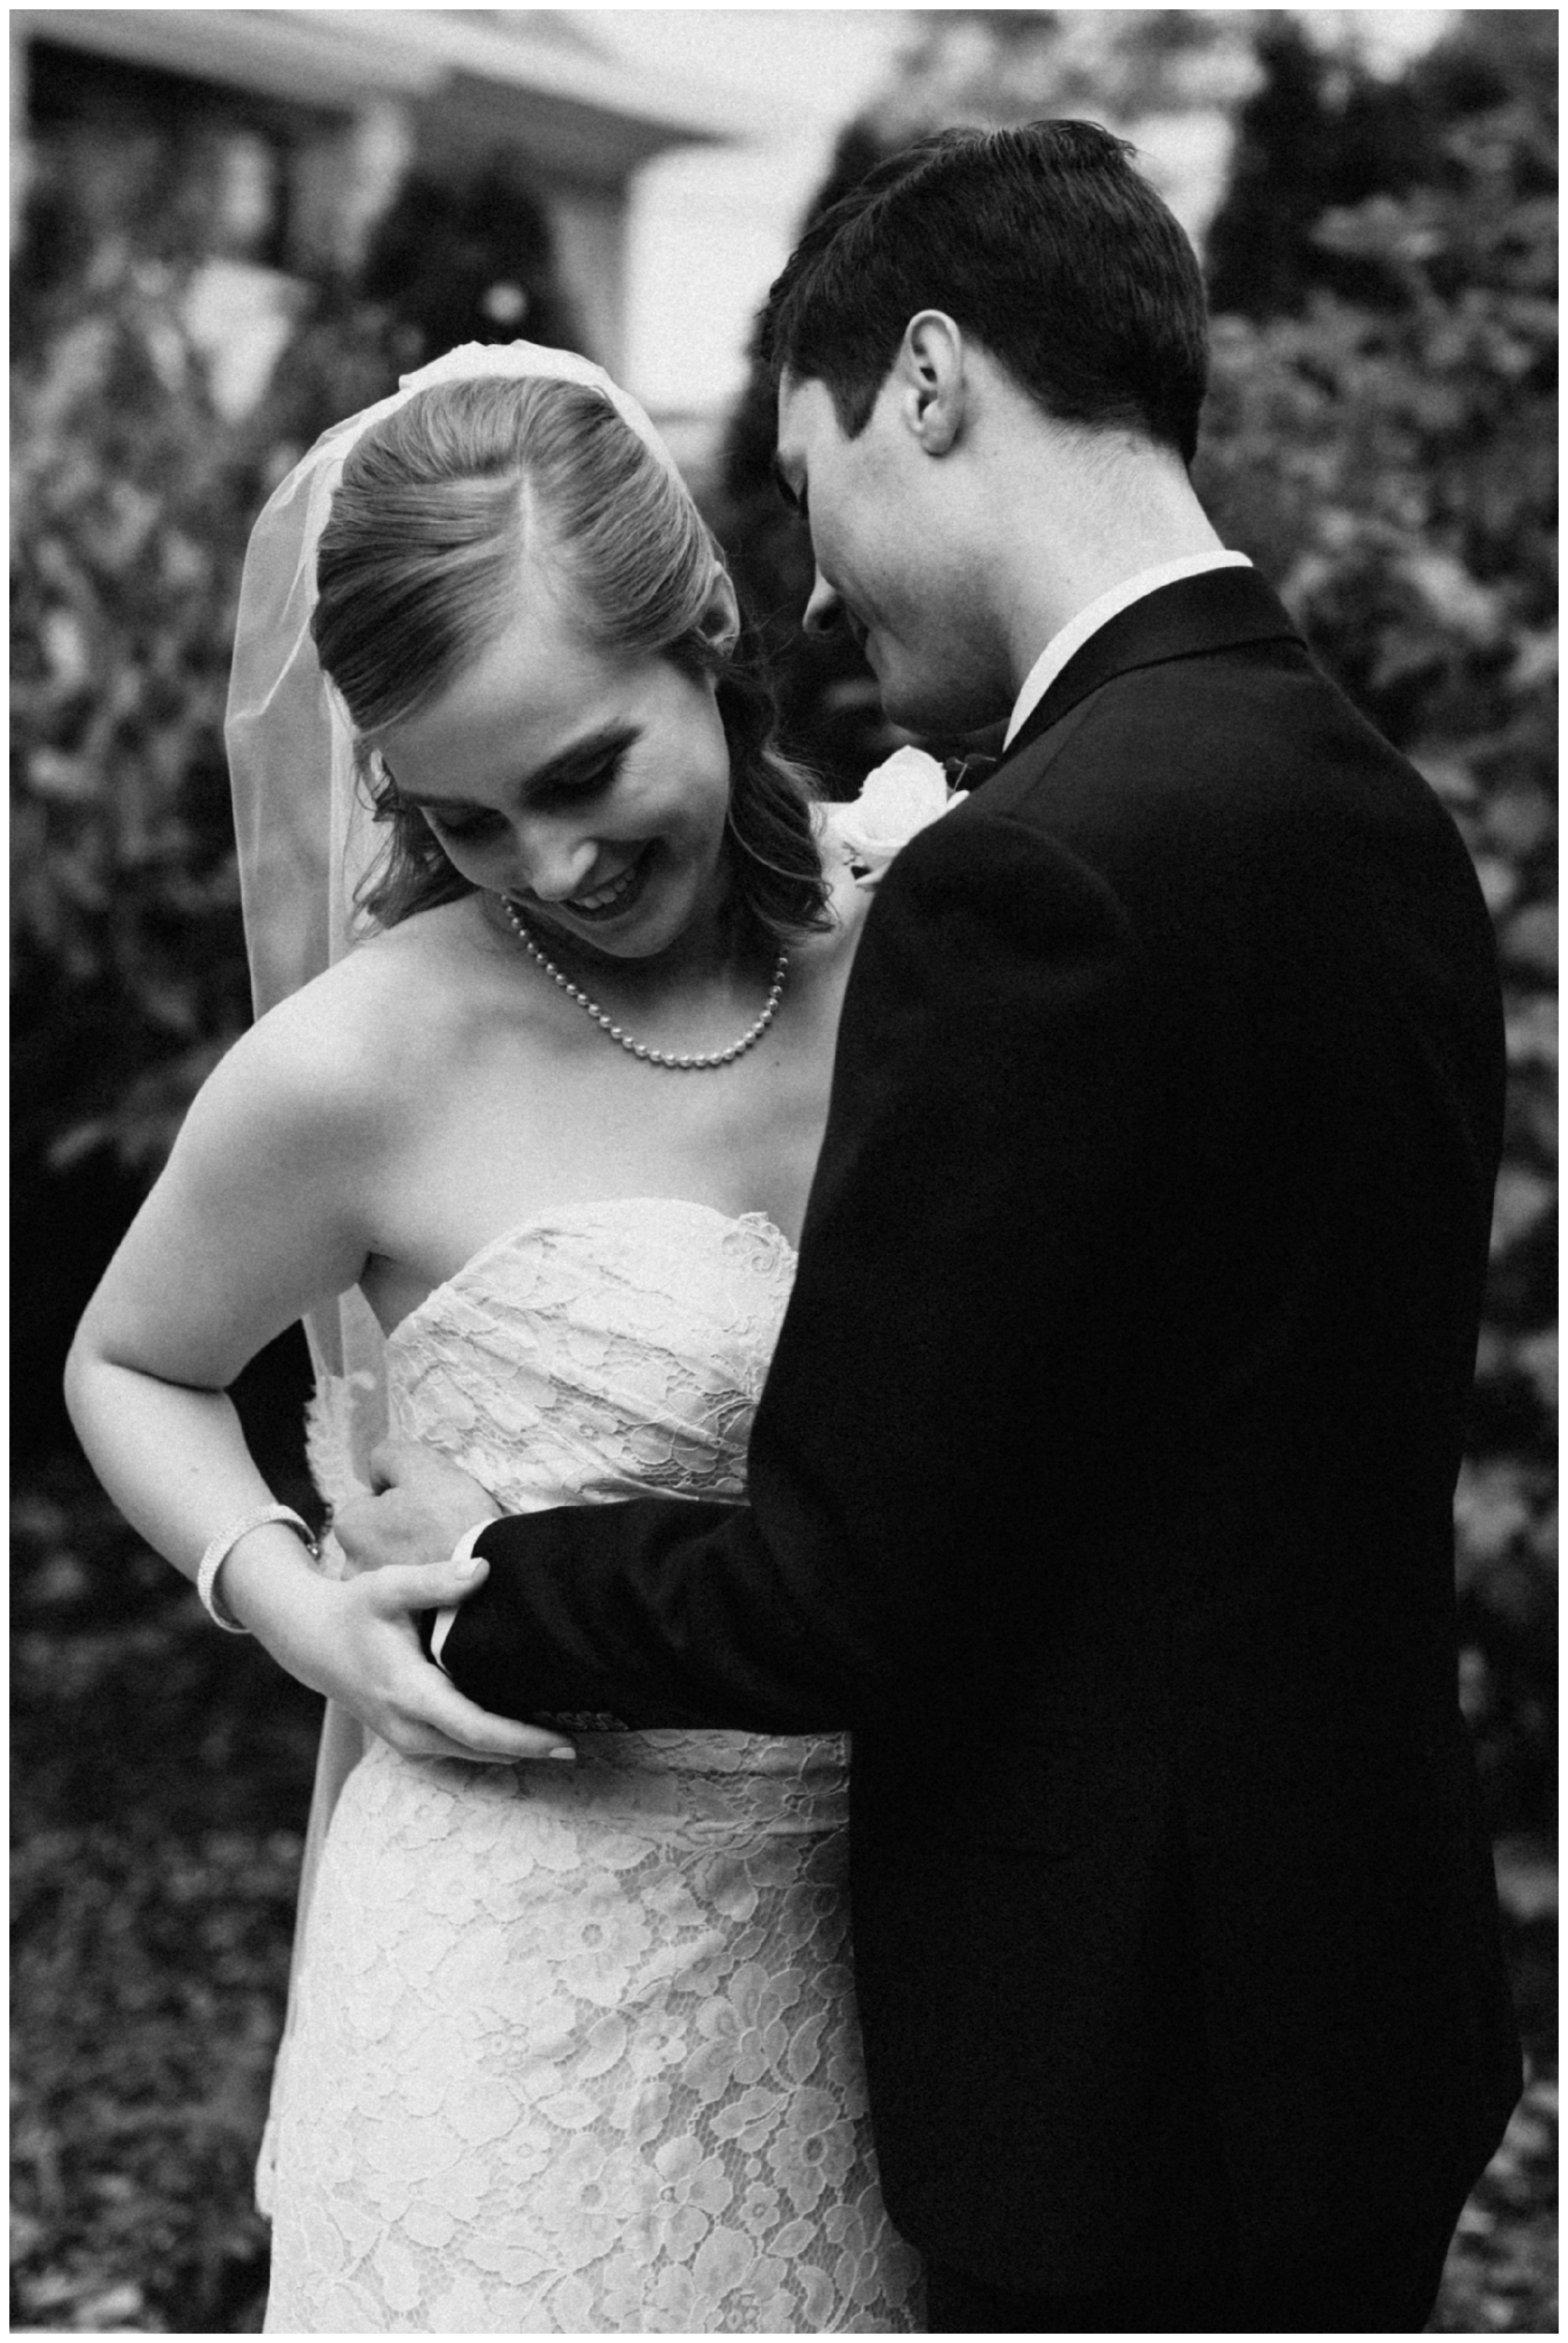 Modern and classy wedding at the St Paul College club photographed by Britt DeZeeuw